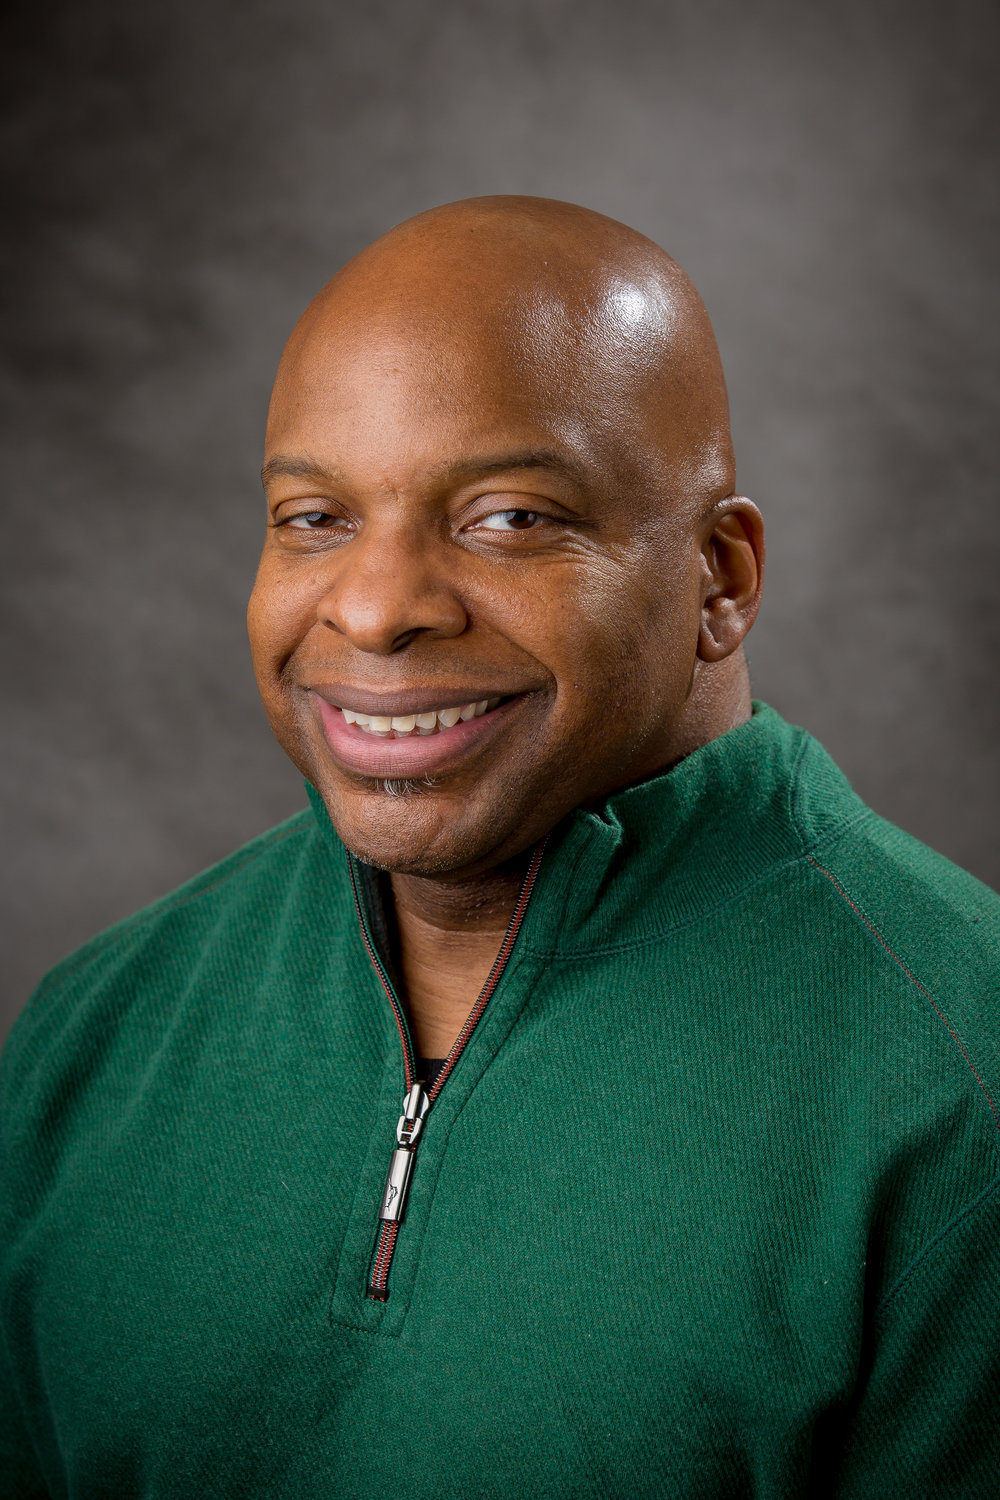 Ronald Bryant Deputy Warden   Ron is a recent addition to the board, joining in 2016. By vocation, Ron is a Deputy Warden responsible for programming at The Erie County Prison. He brings expertise on the relation between homelessness and incarceration to the mission of The Upper Room.